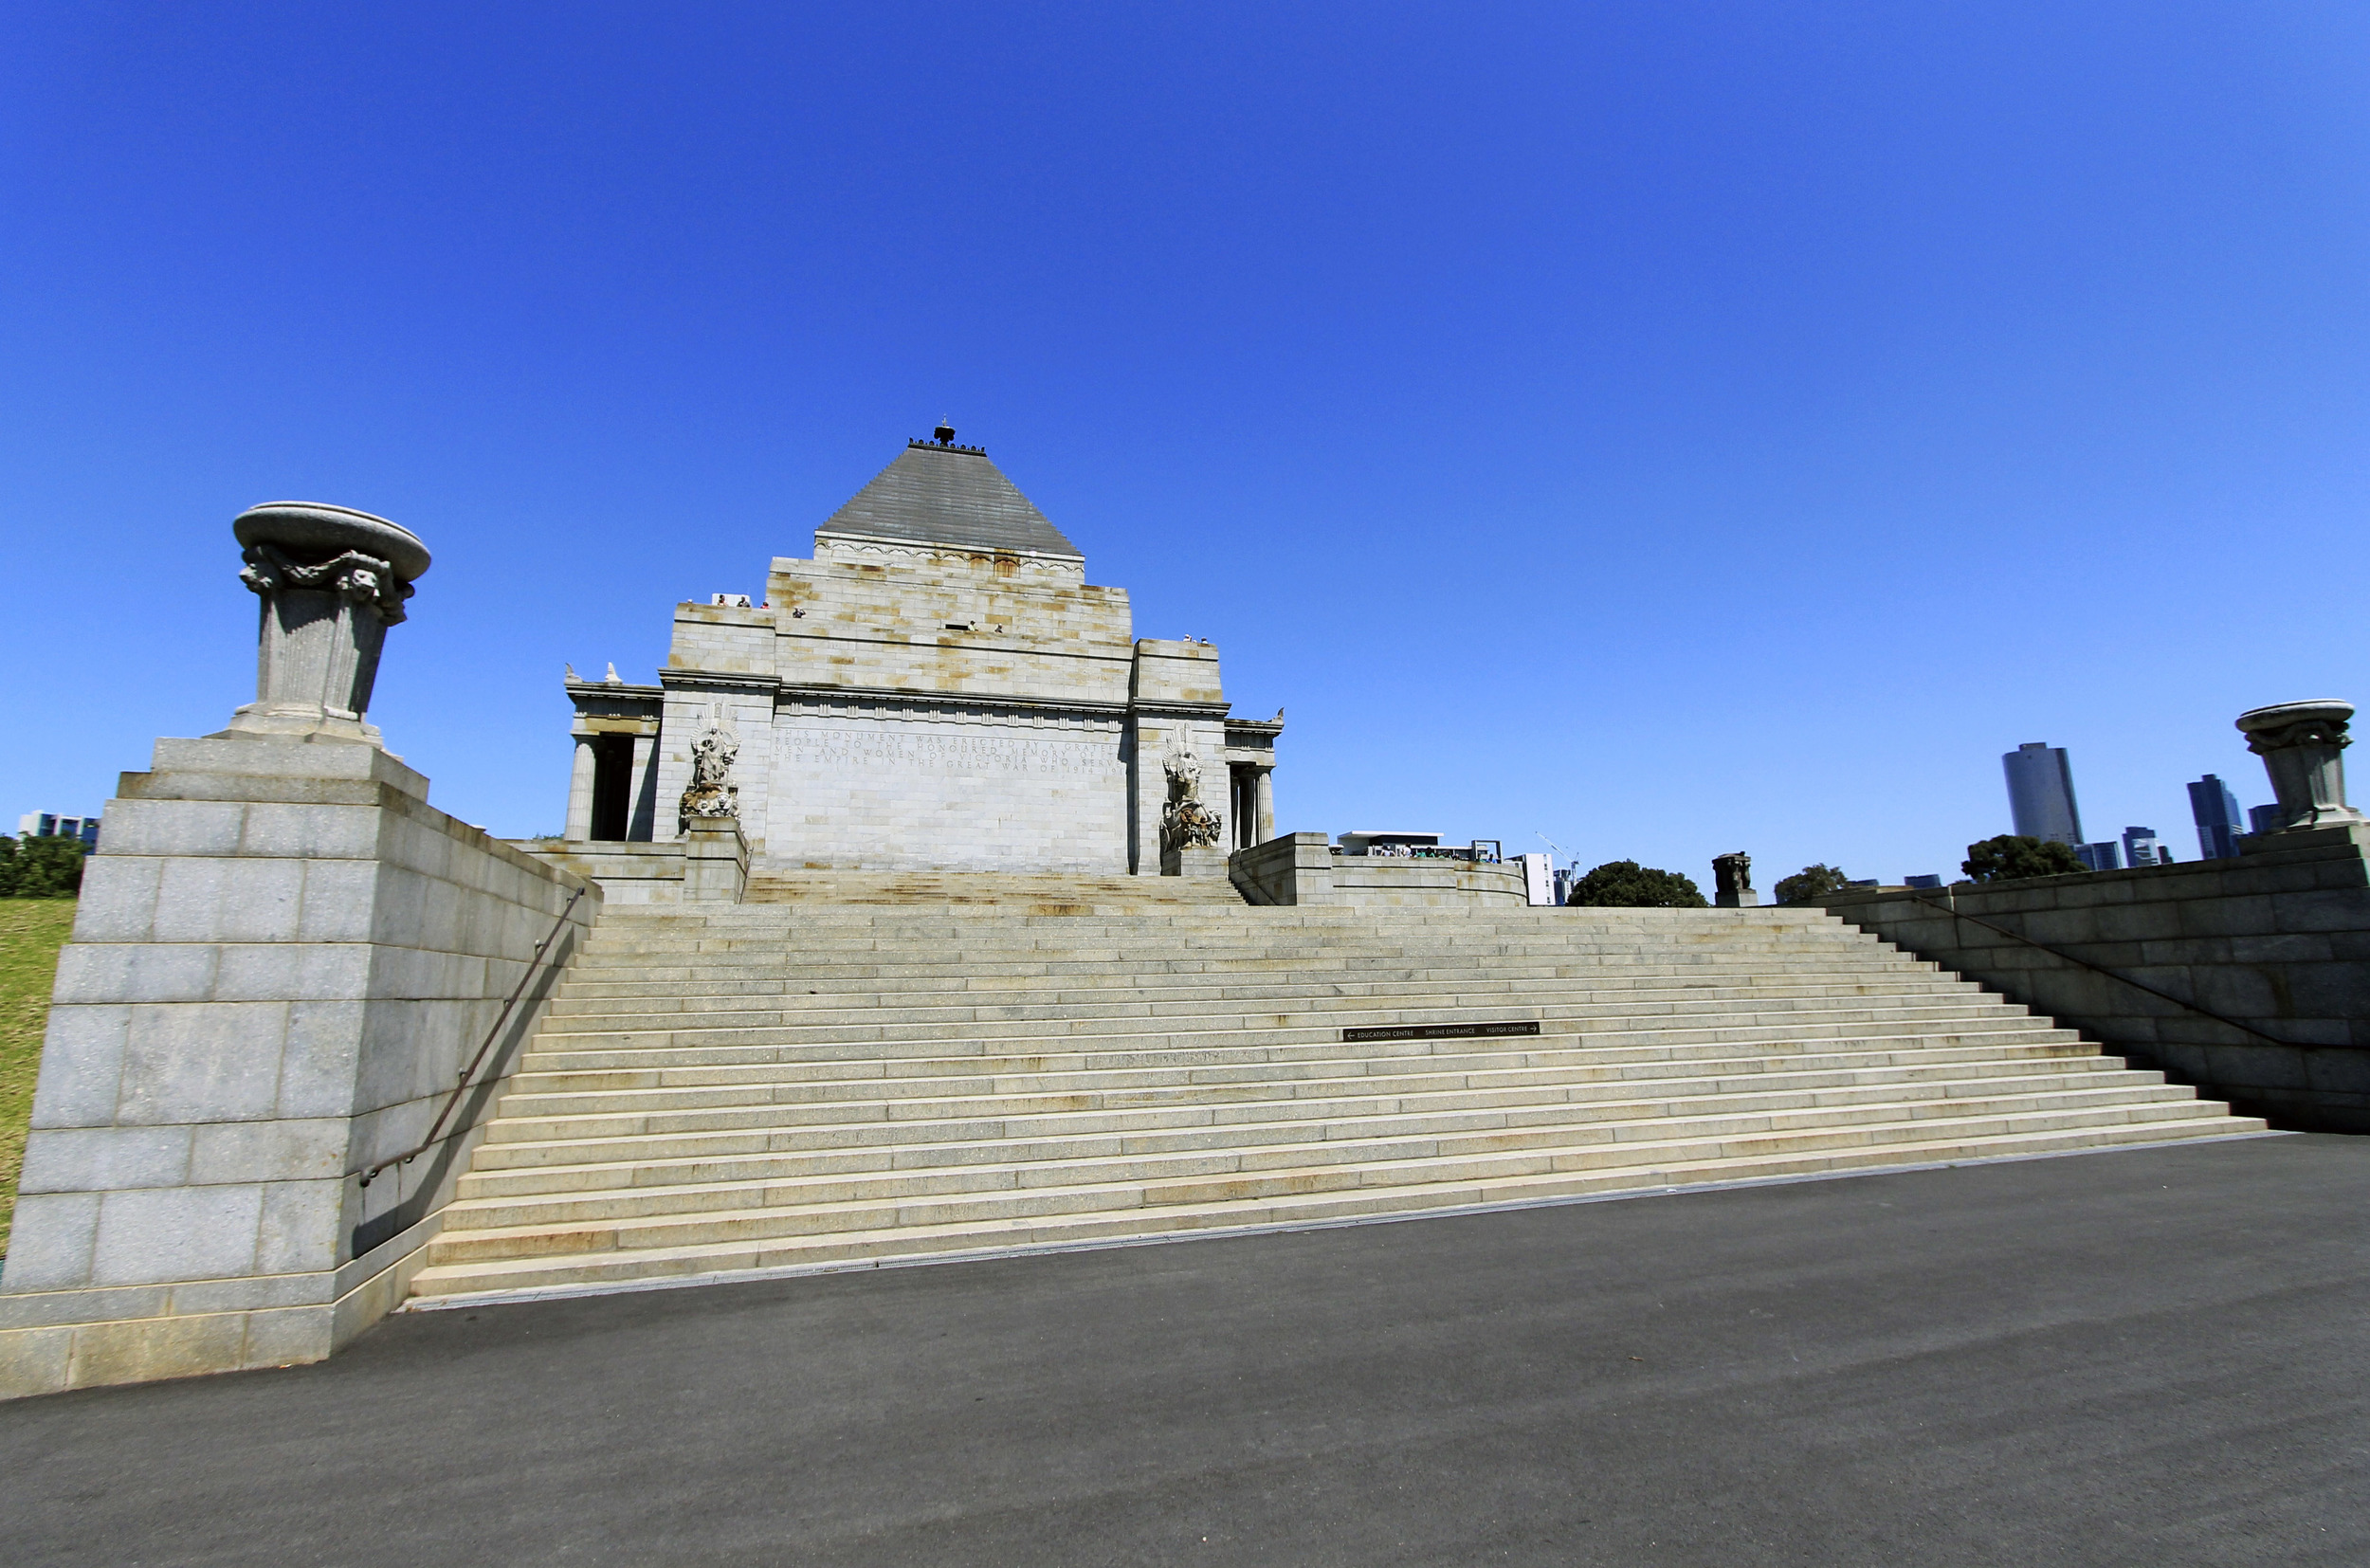 shrine-of-rememberance-monument-melbourne.jpg